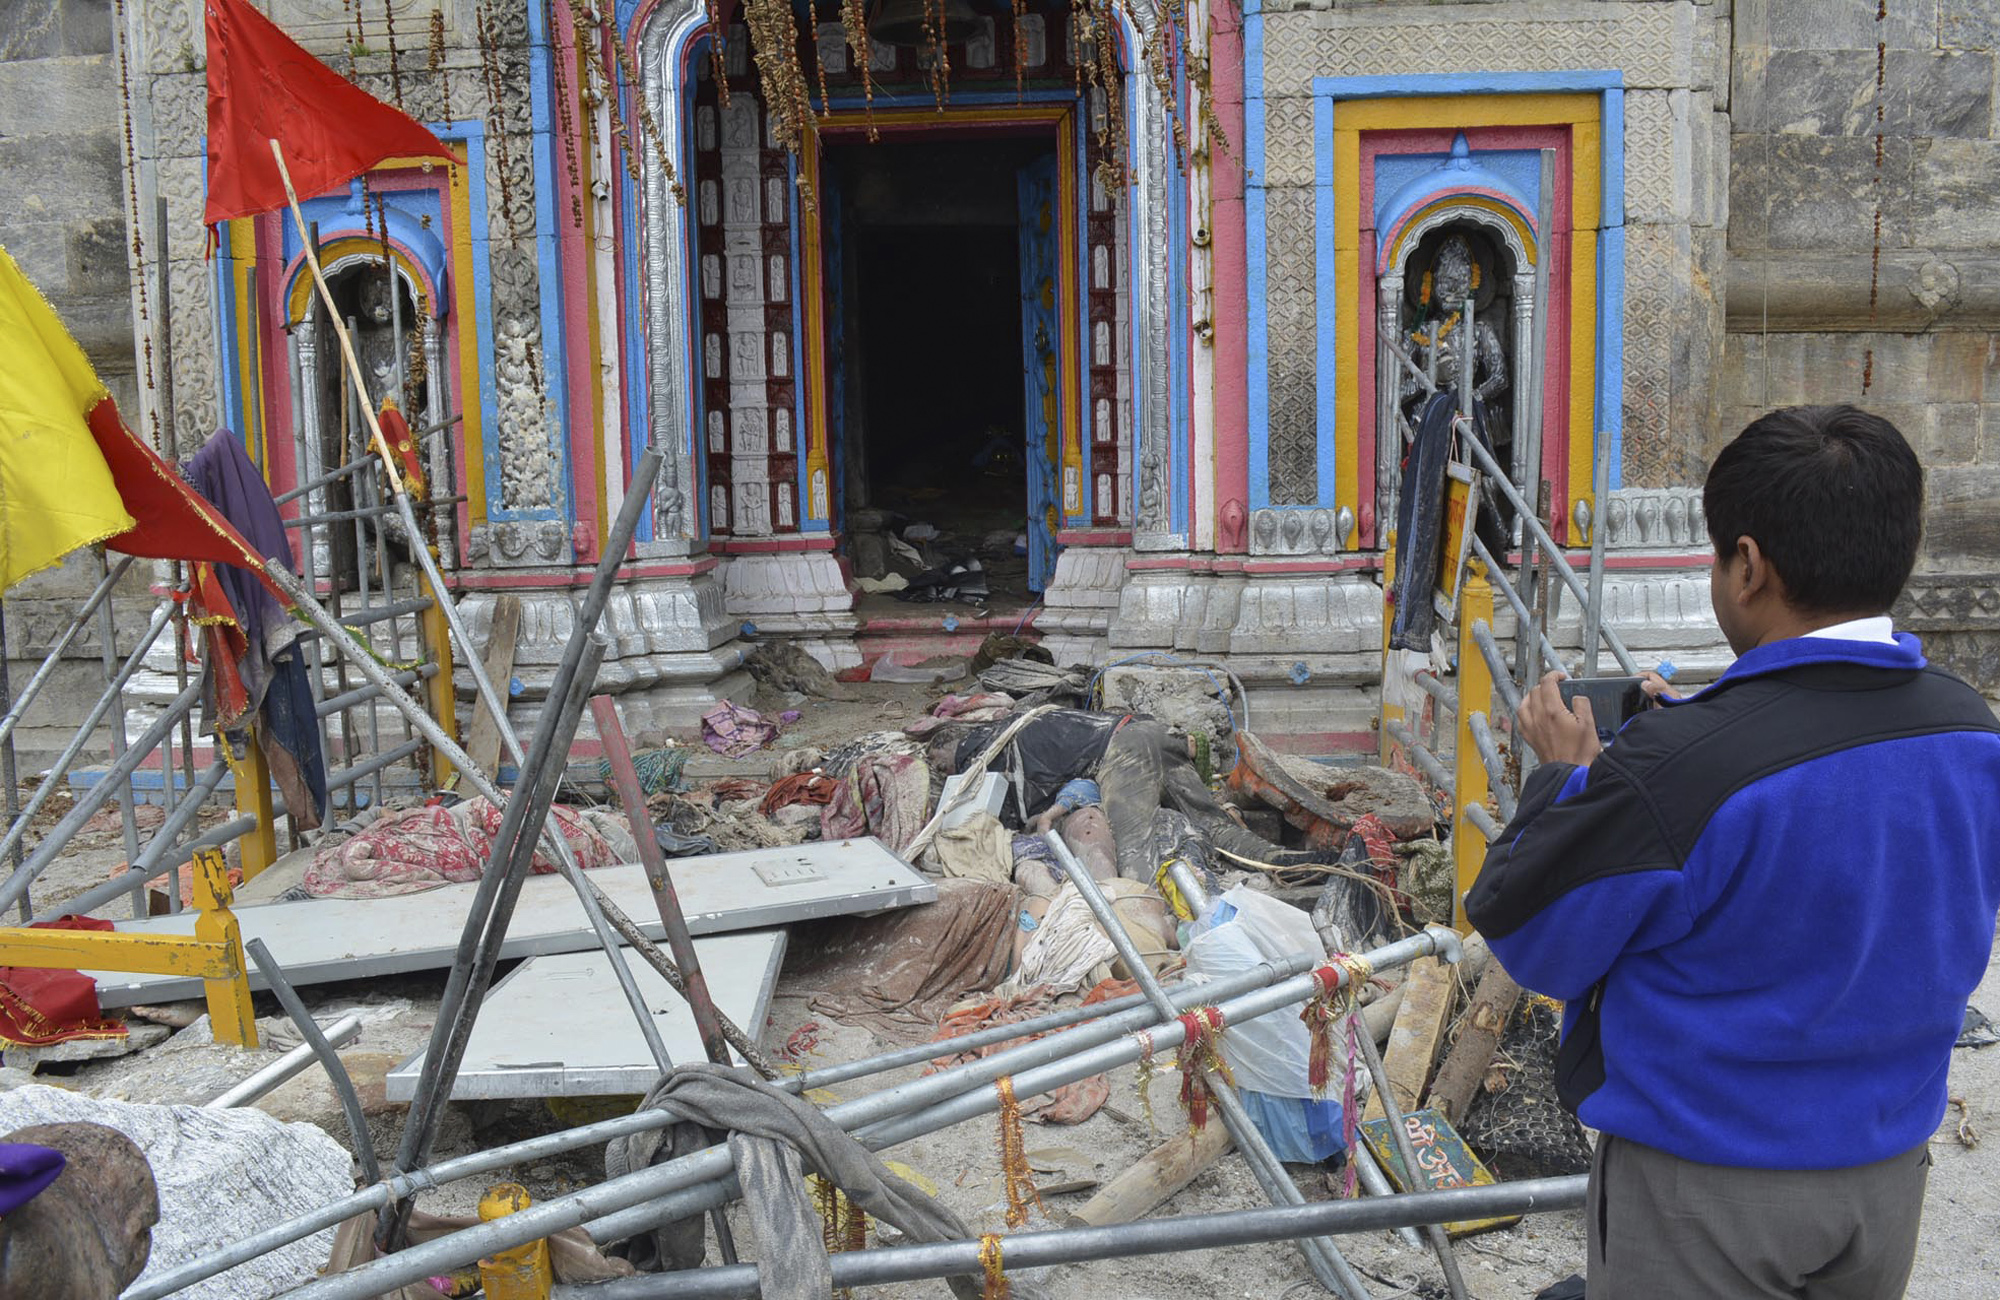 In this Thursday June 20, 2013, photo, a visitor takes photographs as bodies of pilgrims are seen lying in from of the Kedarnath shrine, one of the holiest of Hindu temples dedicated to Lord Shiva at Kedarnath, in the northern Indian state of Uttrakhand.